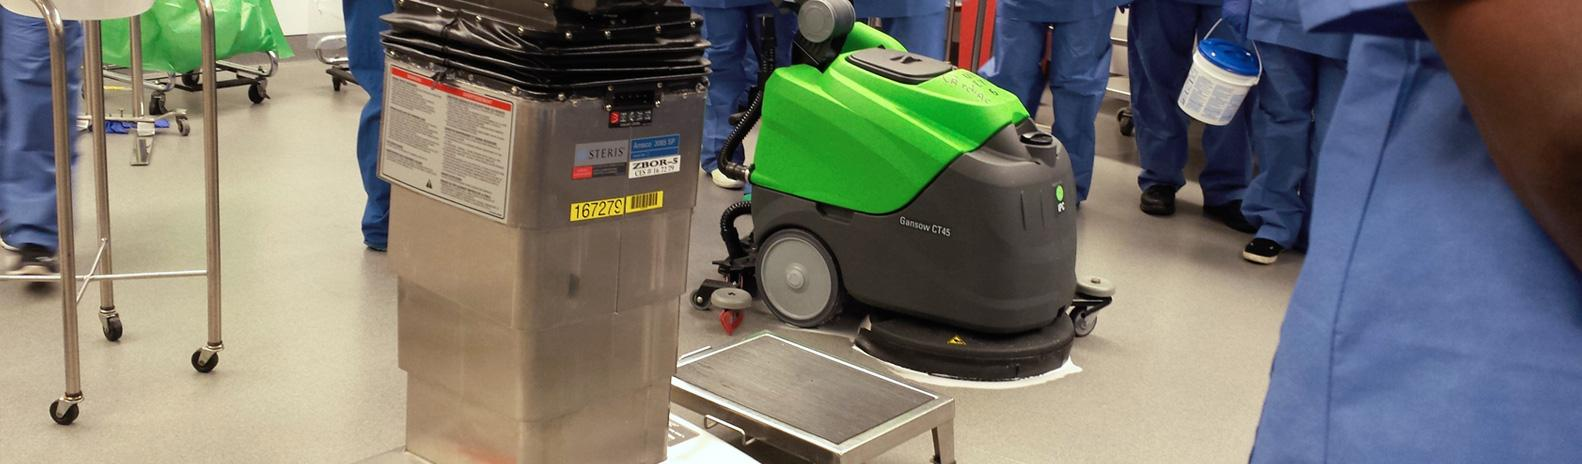 machine for hospital janitorial services